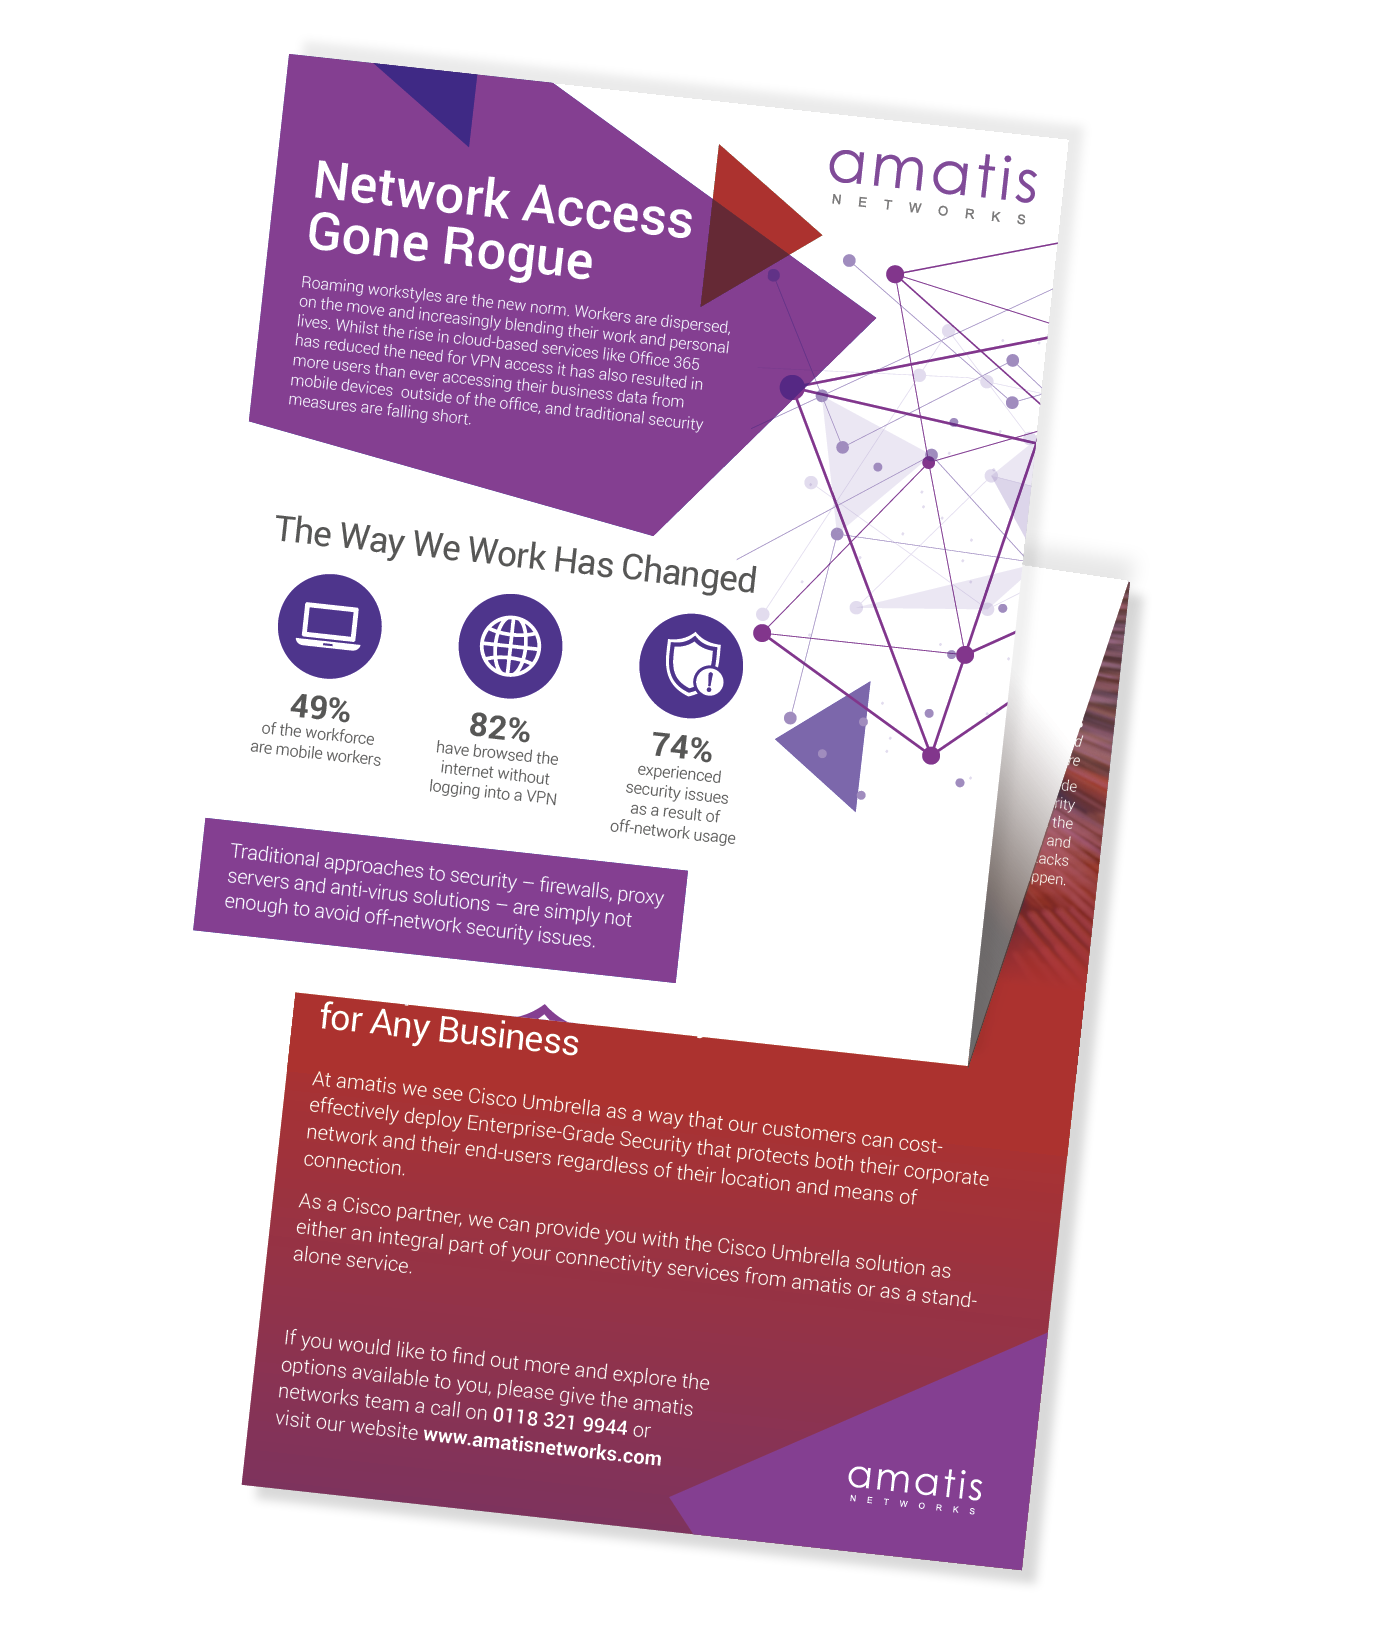 Network Access Rogue Infographic